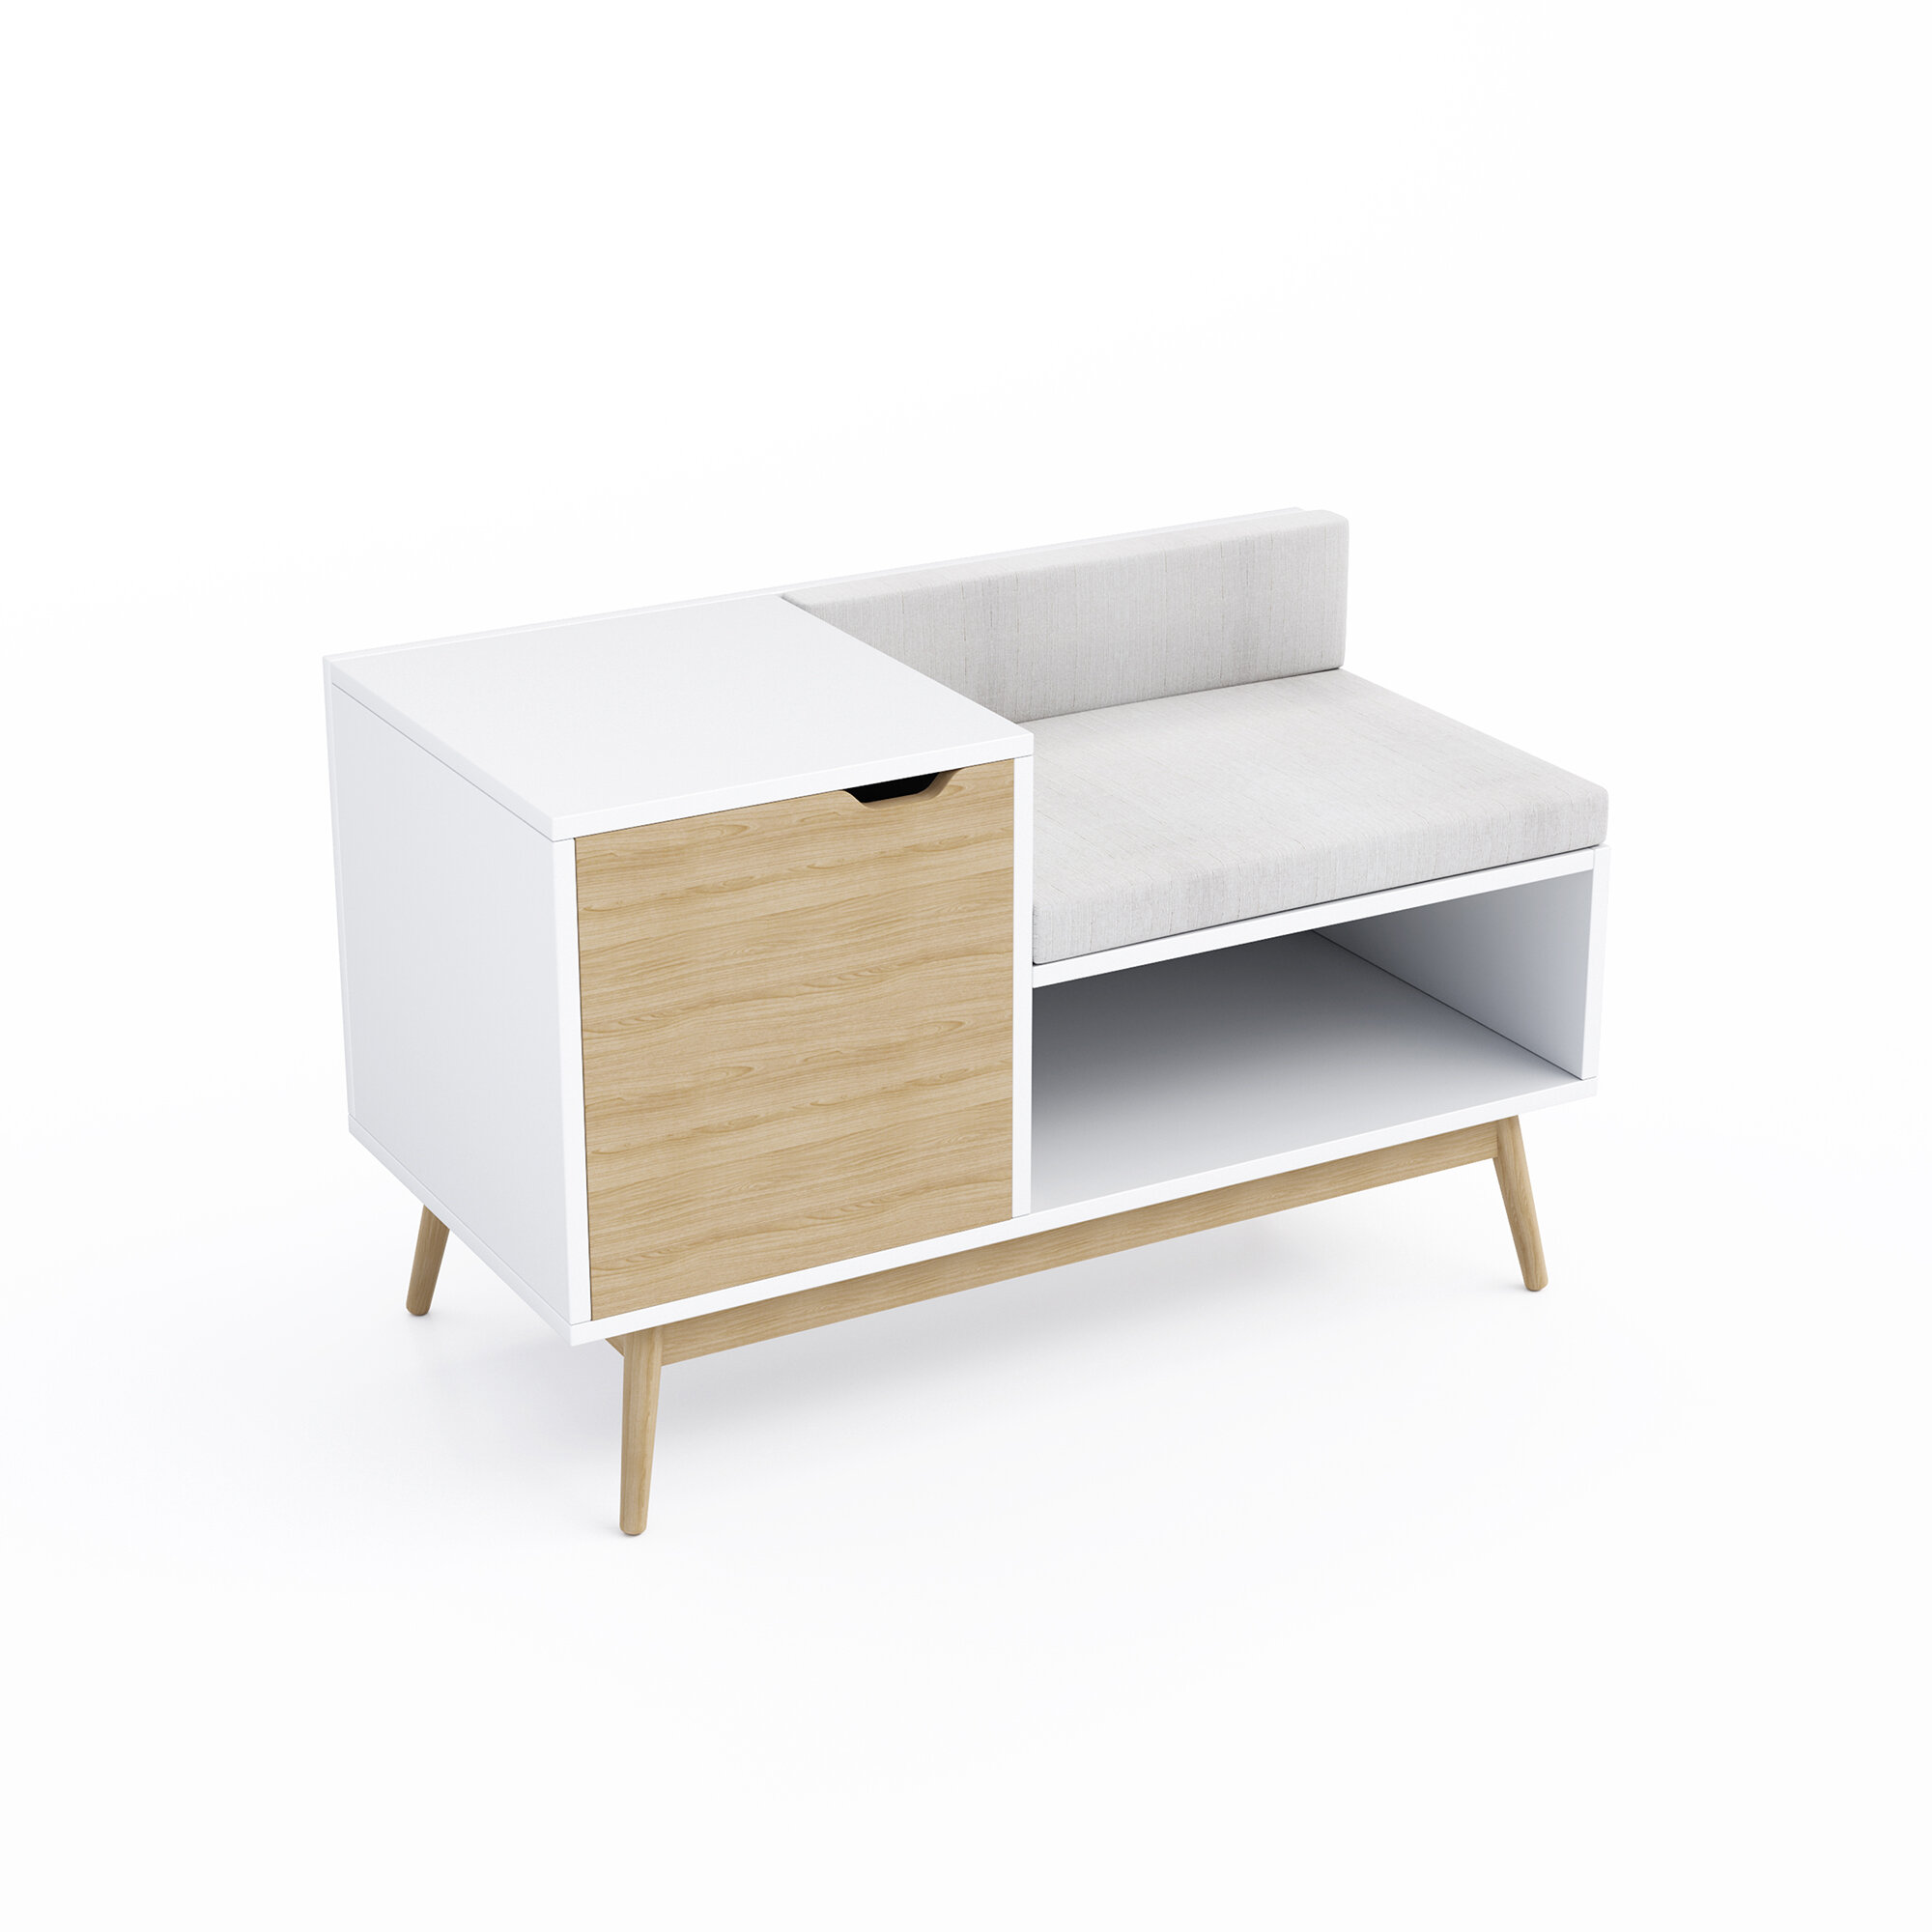 Swell Langley Street Kinsley Sectional Wood Storage Bench Inzonedesignstudio Interior Chair Design Inzonedesignstudiocom